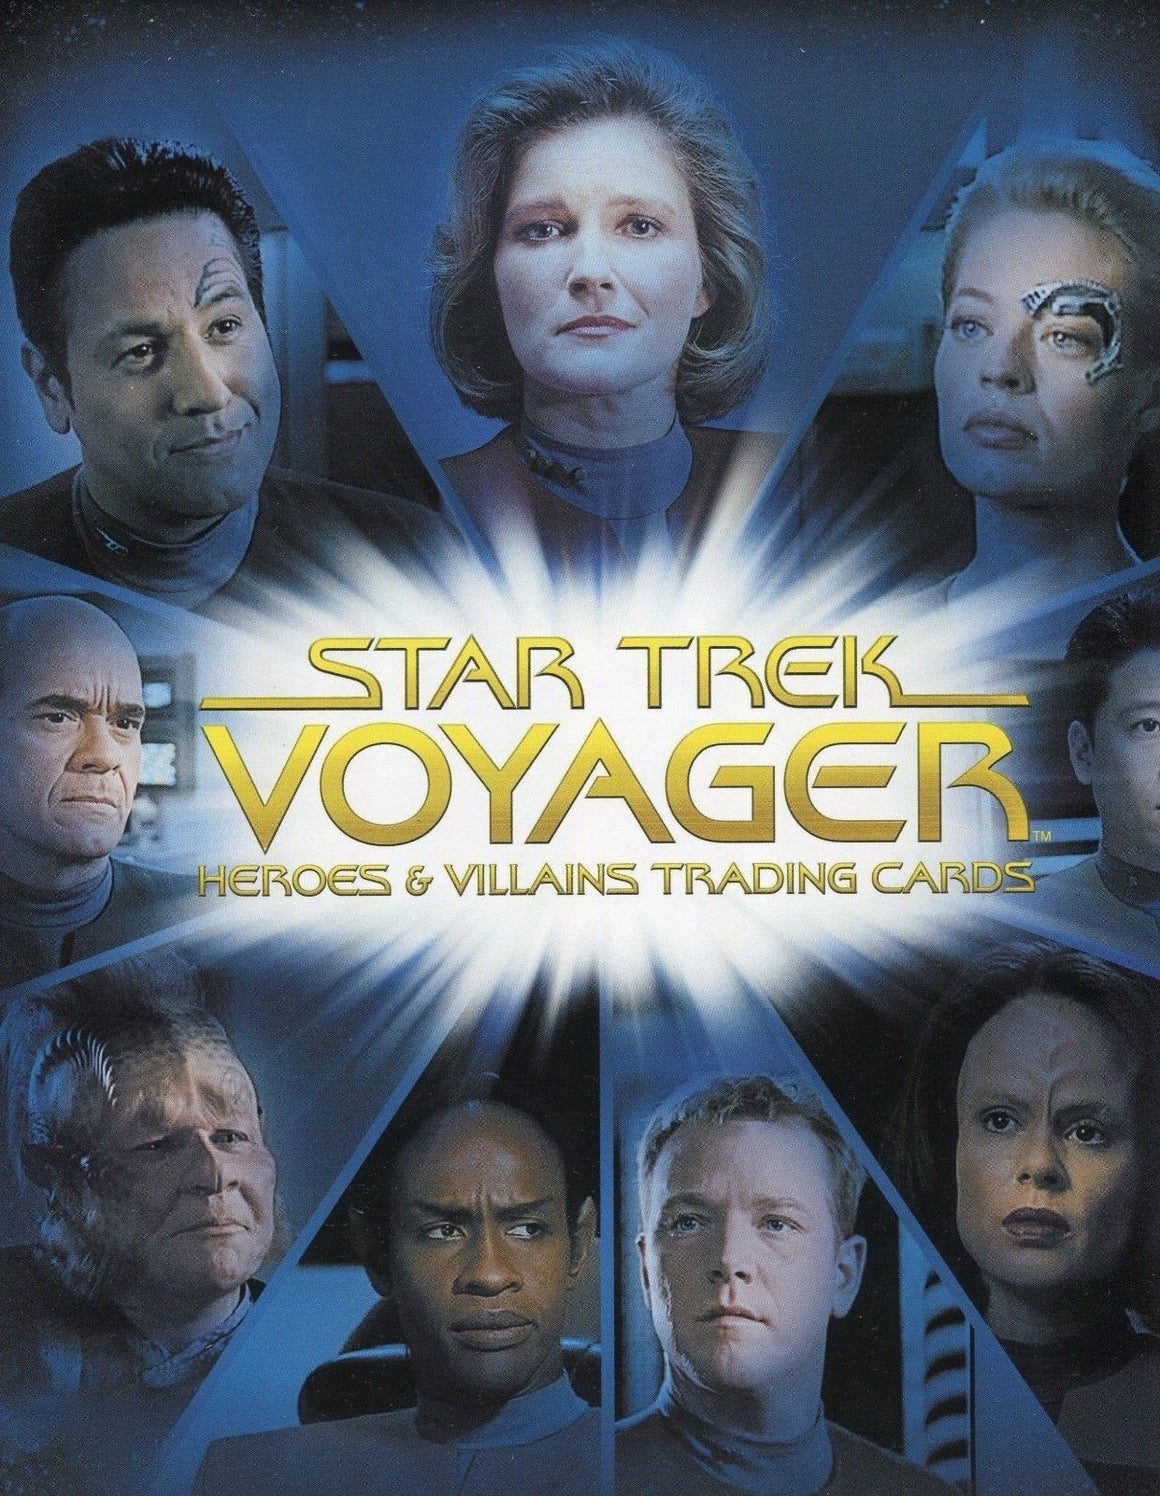 Star Trek Voyager Heroes & Villains Card Album